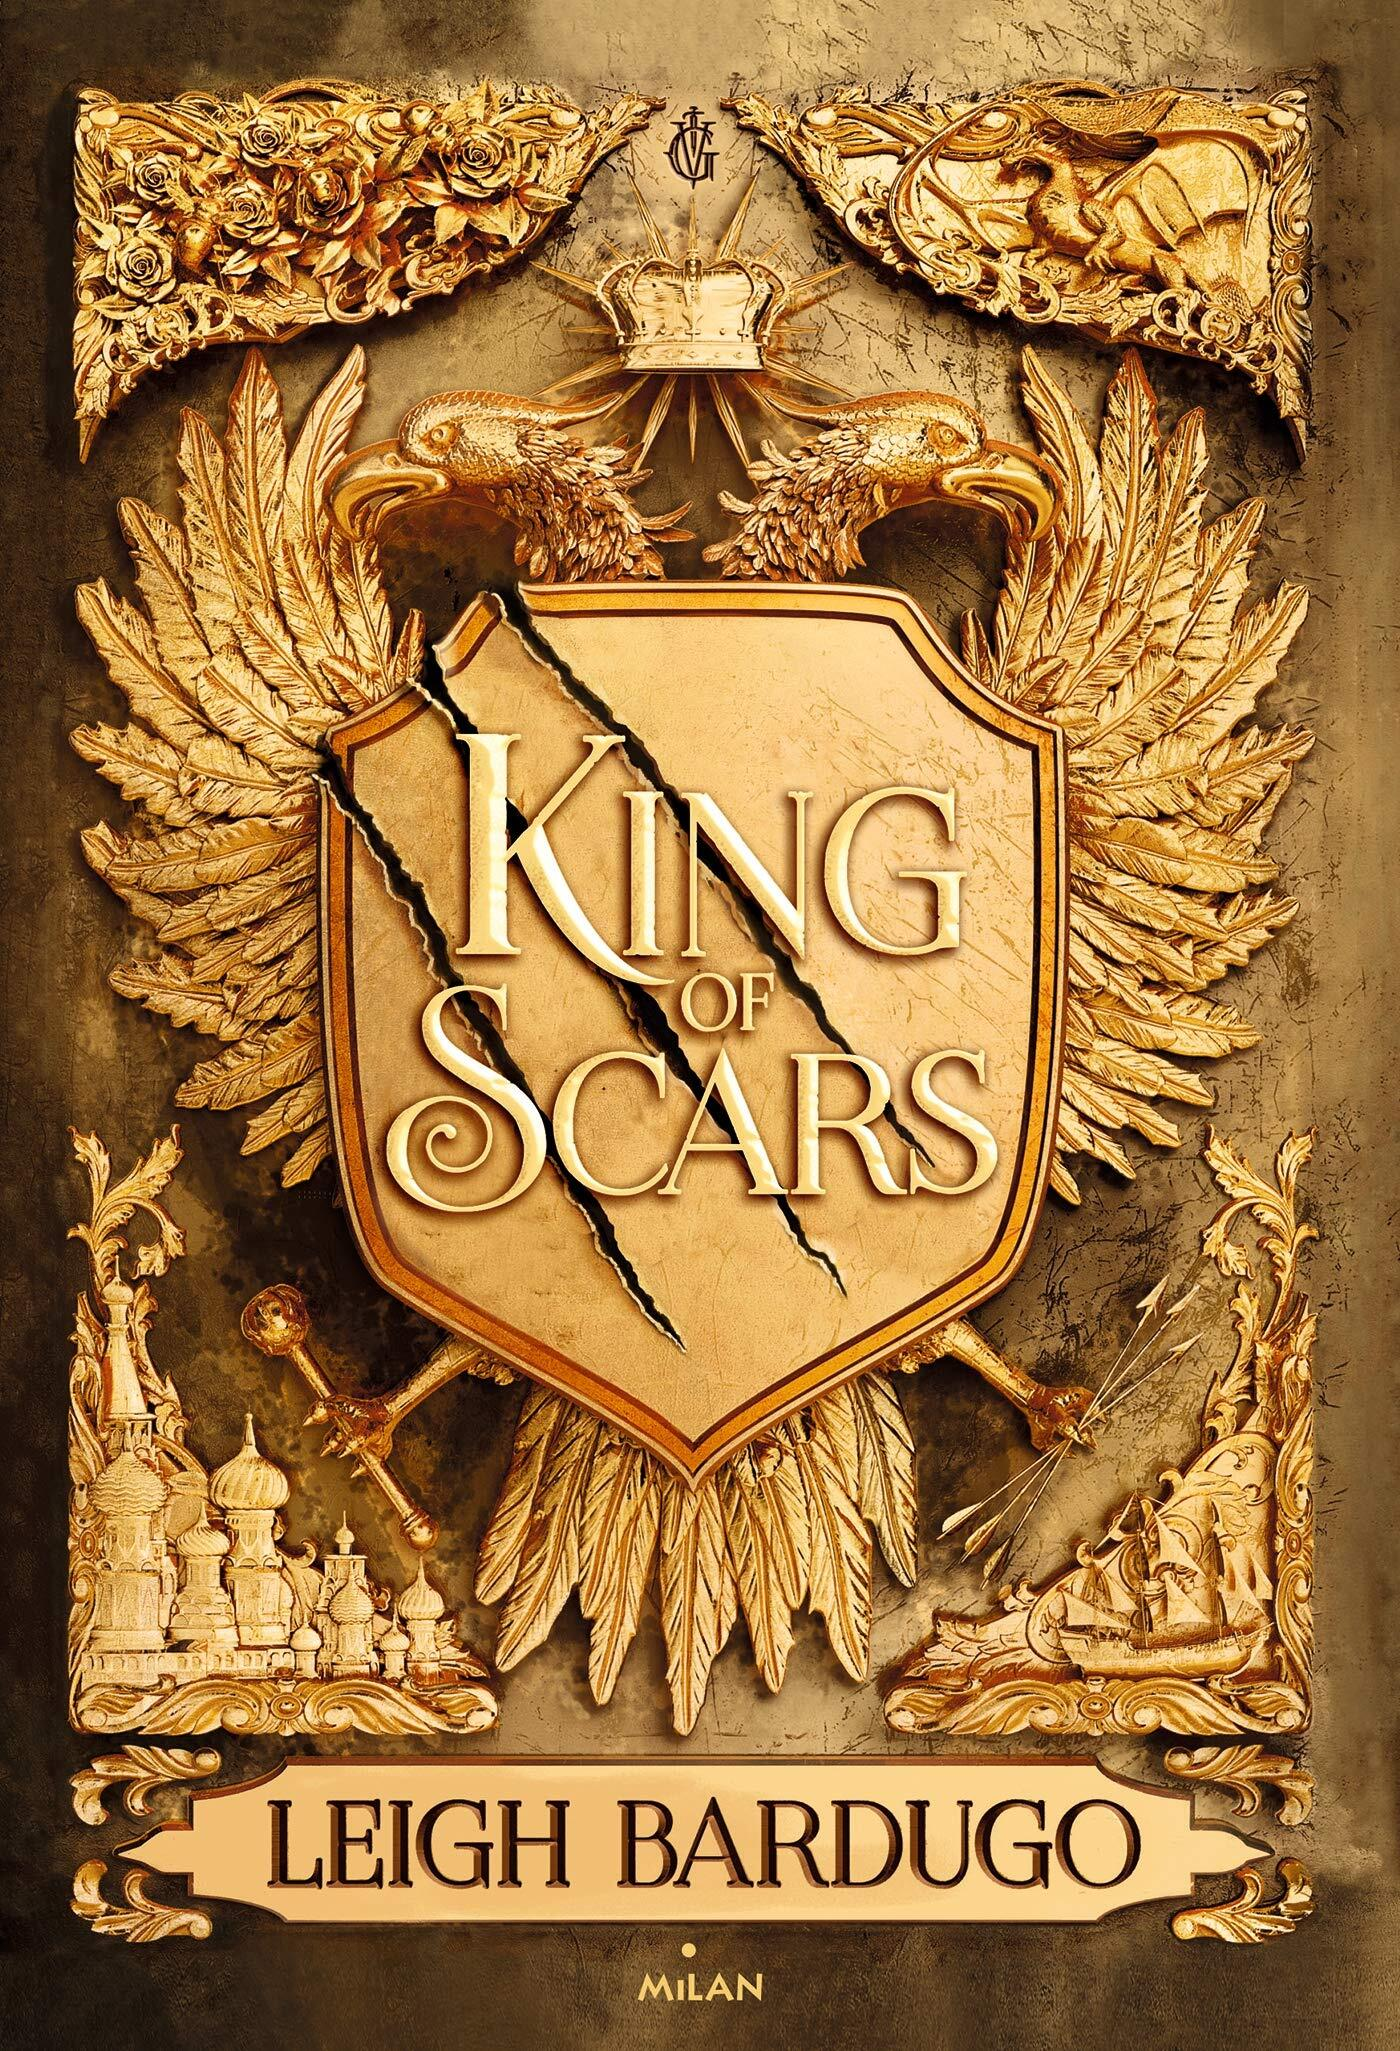 King of Scars de Leigh Bardugo